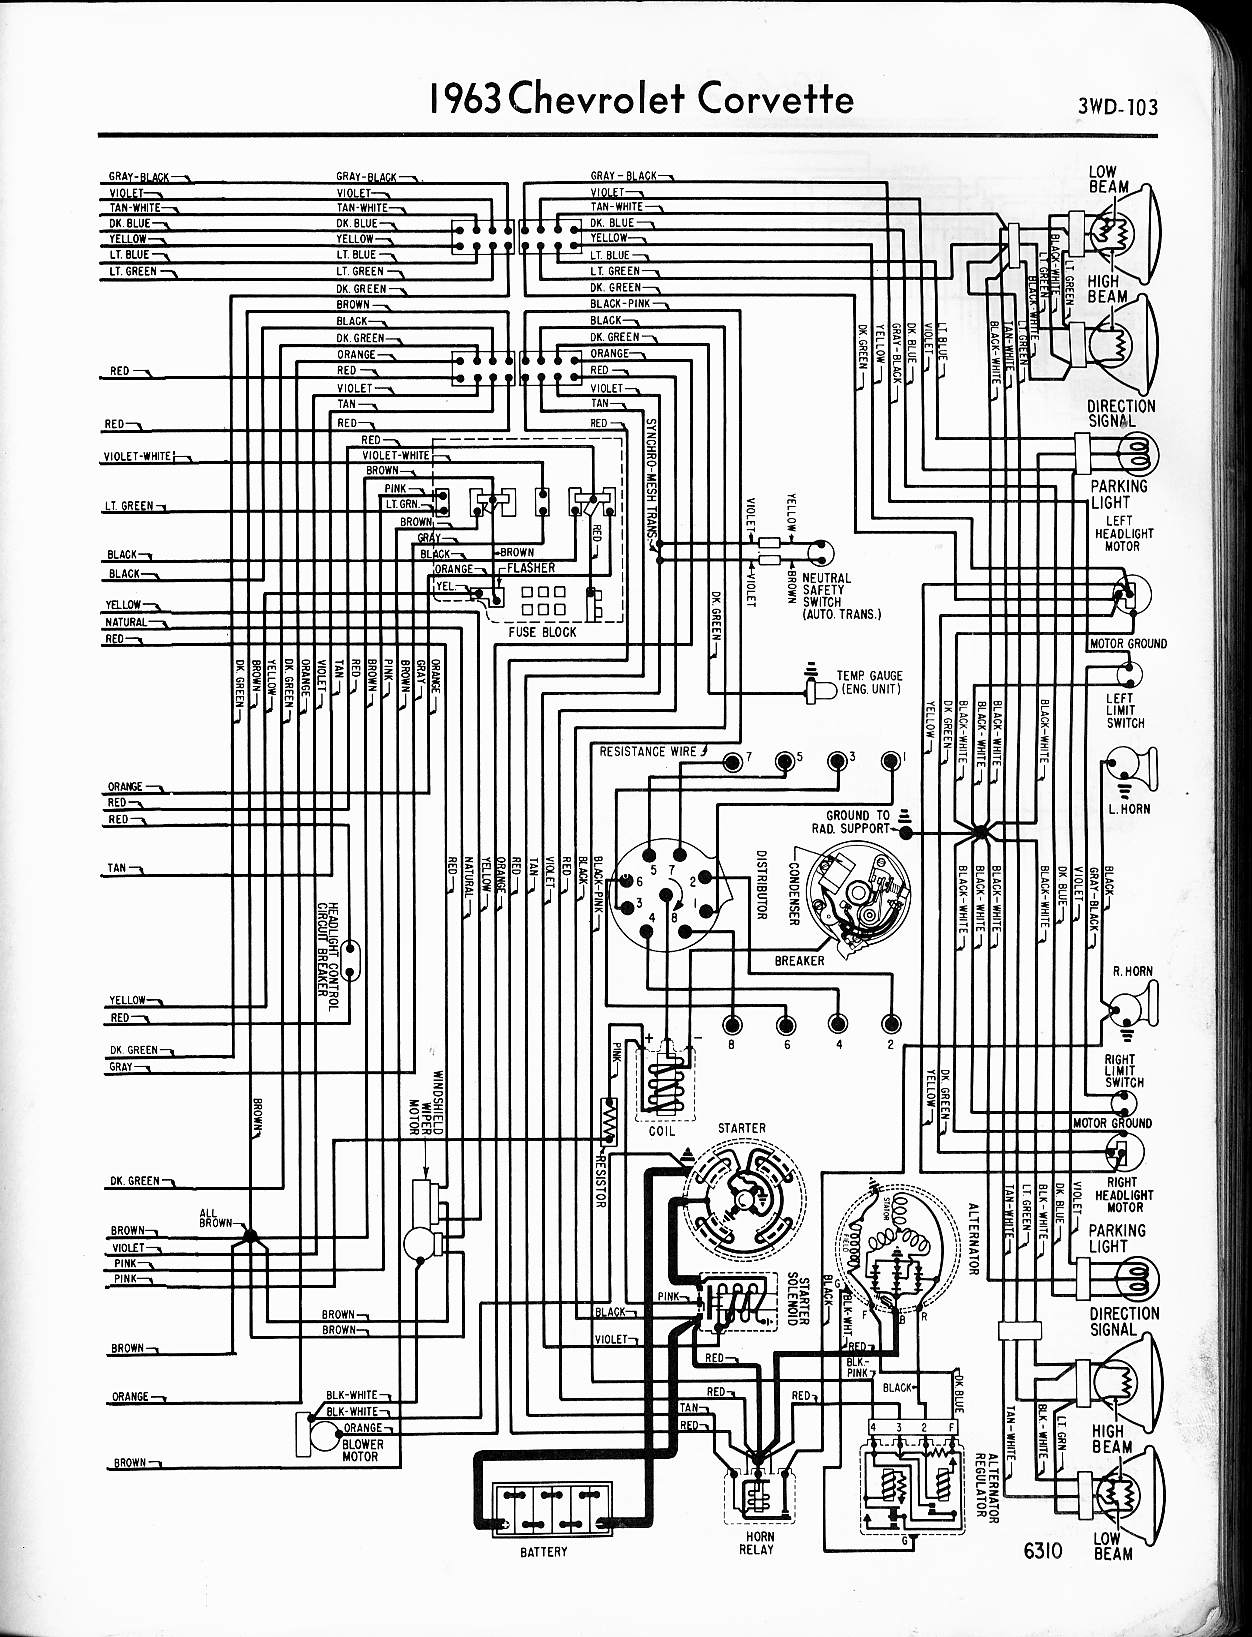 hight resolution of 1963 chevrolet corvette dash wiring diagram wiring diagrams rh bwhw michelstadt de 1963 impala horn relay wiring diagram 63 impala rear wiring diagram